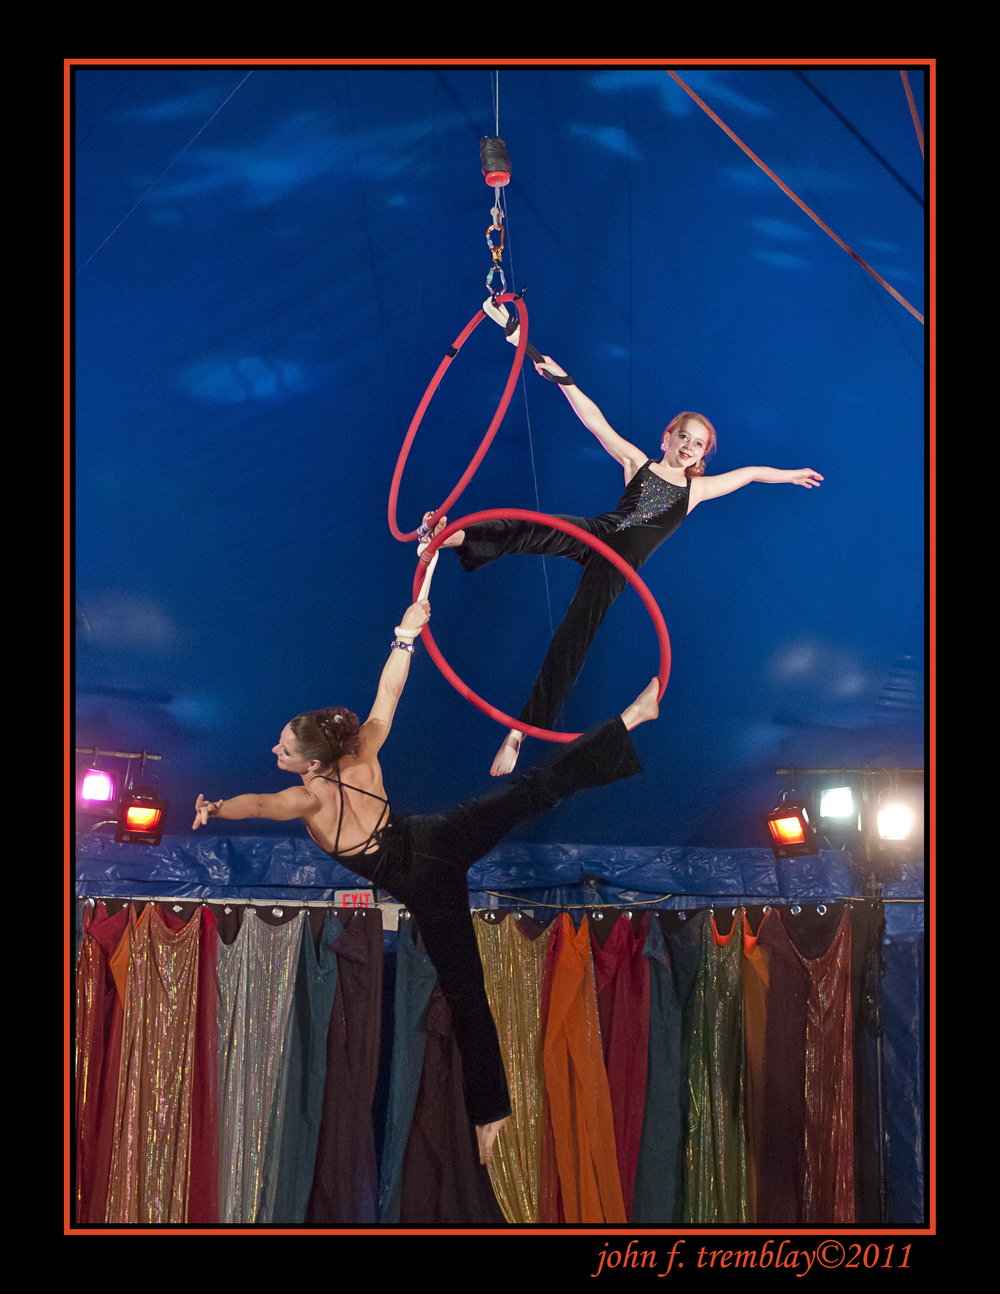 Melinda and Zoe - Melinda has CARRIED on the family tradition with her daughter since Zoë was born.  This mother-daughter Lyra  photo by john tremblay is from a tented show melinda produced in 2011 at the veteran's post 440 in nonantum, ma. Zoë has grown up surrounded by circus and dance and now produces shows in her own right.